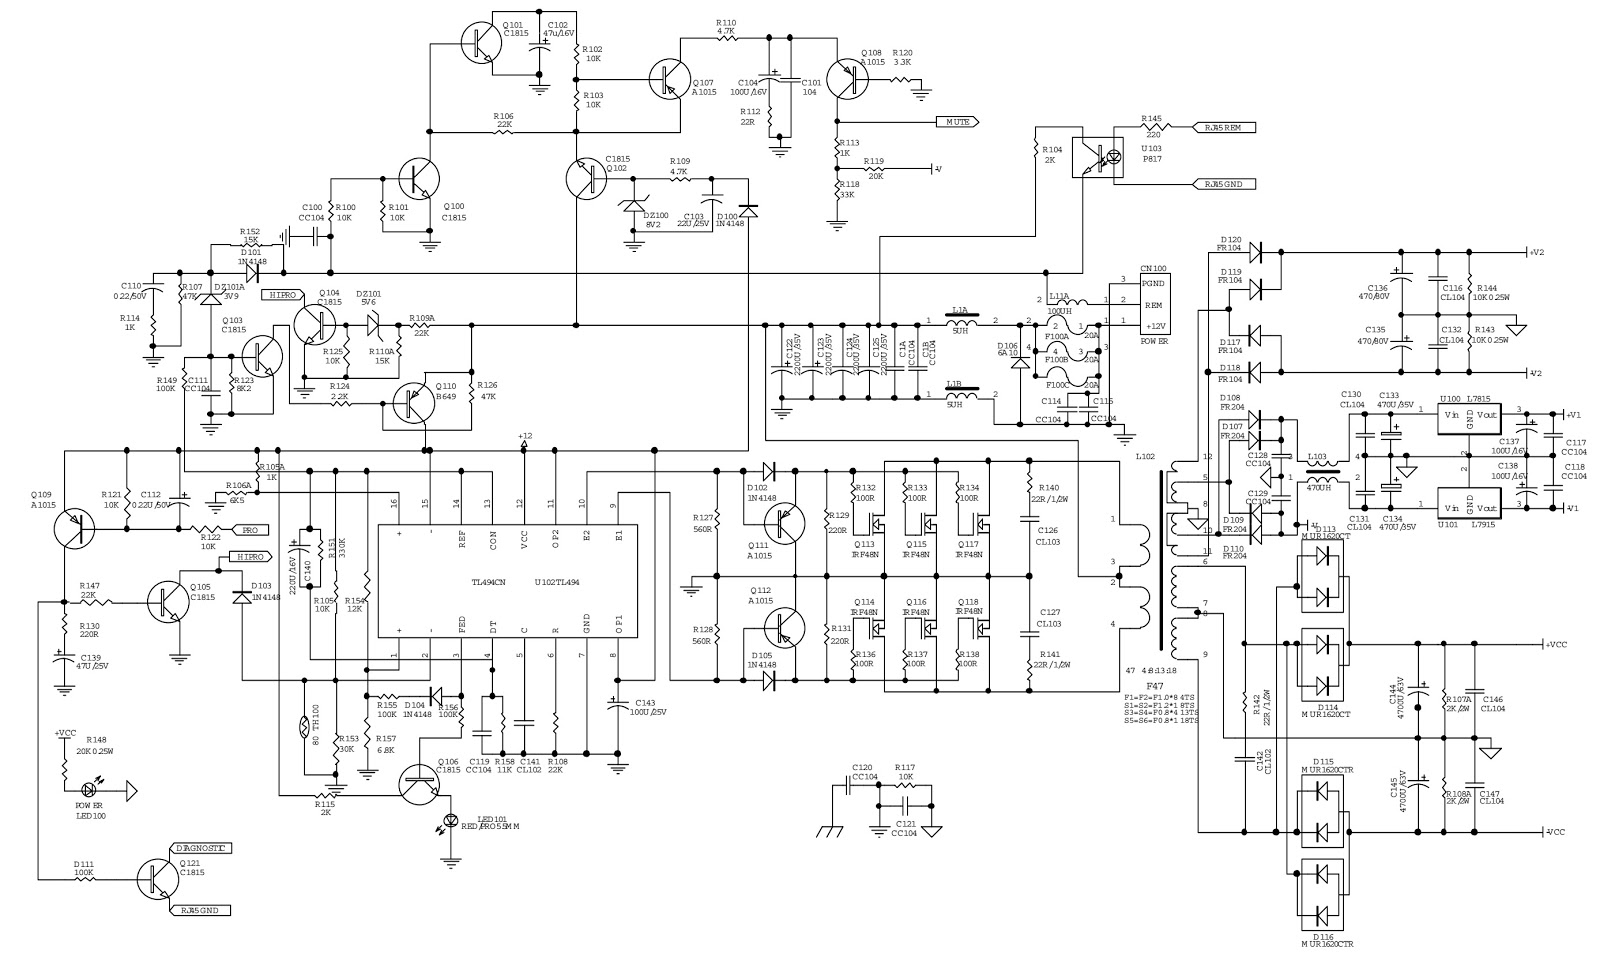 Infinity Car Audio 1300a 1 Channel Power Amplifier Schematic 1channel Amp Wiring Diagram Cause And Solution No Voltage At Batt Or Rem Terminals Bad Ground Connection Check Voltages With Vom